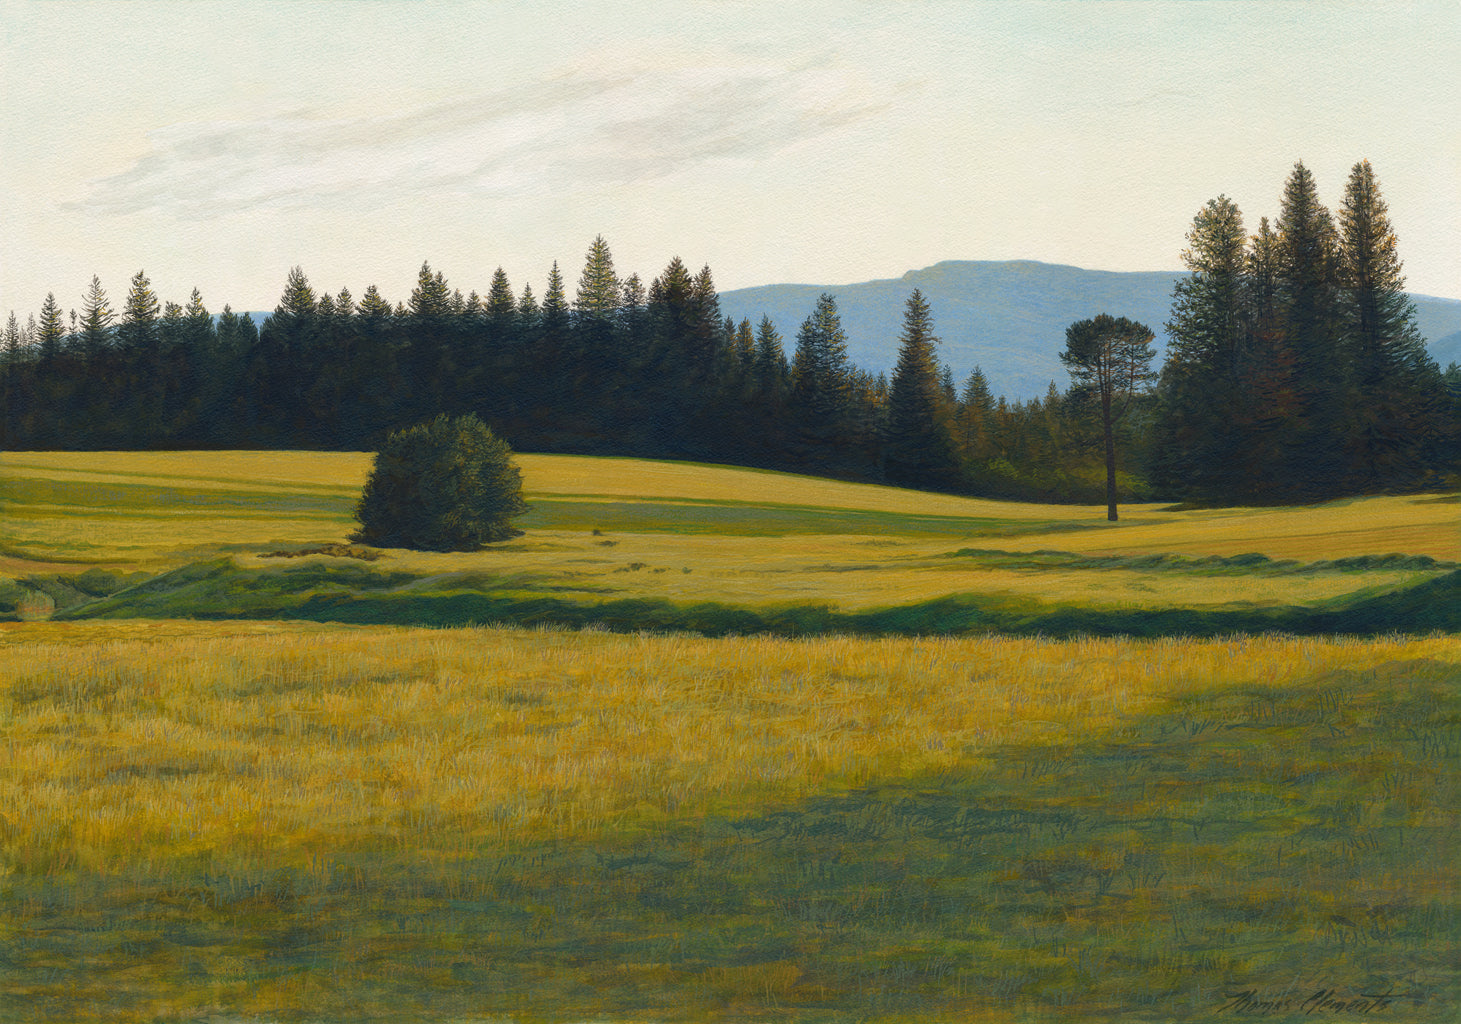 Green Pasture with Creek and Mountain Painting Giclée Print